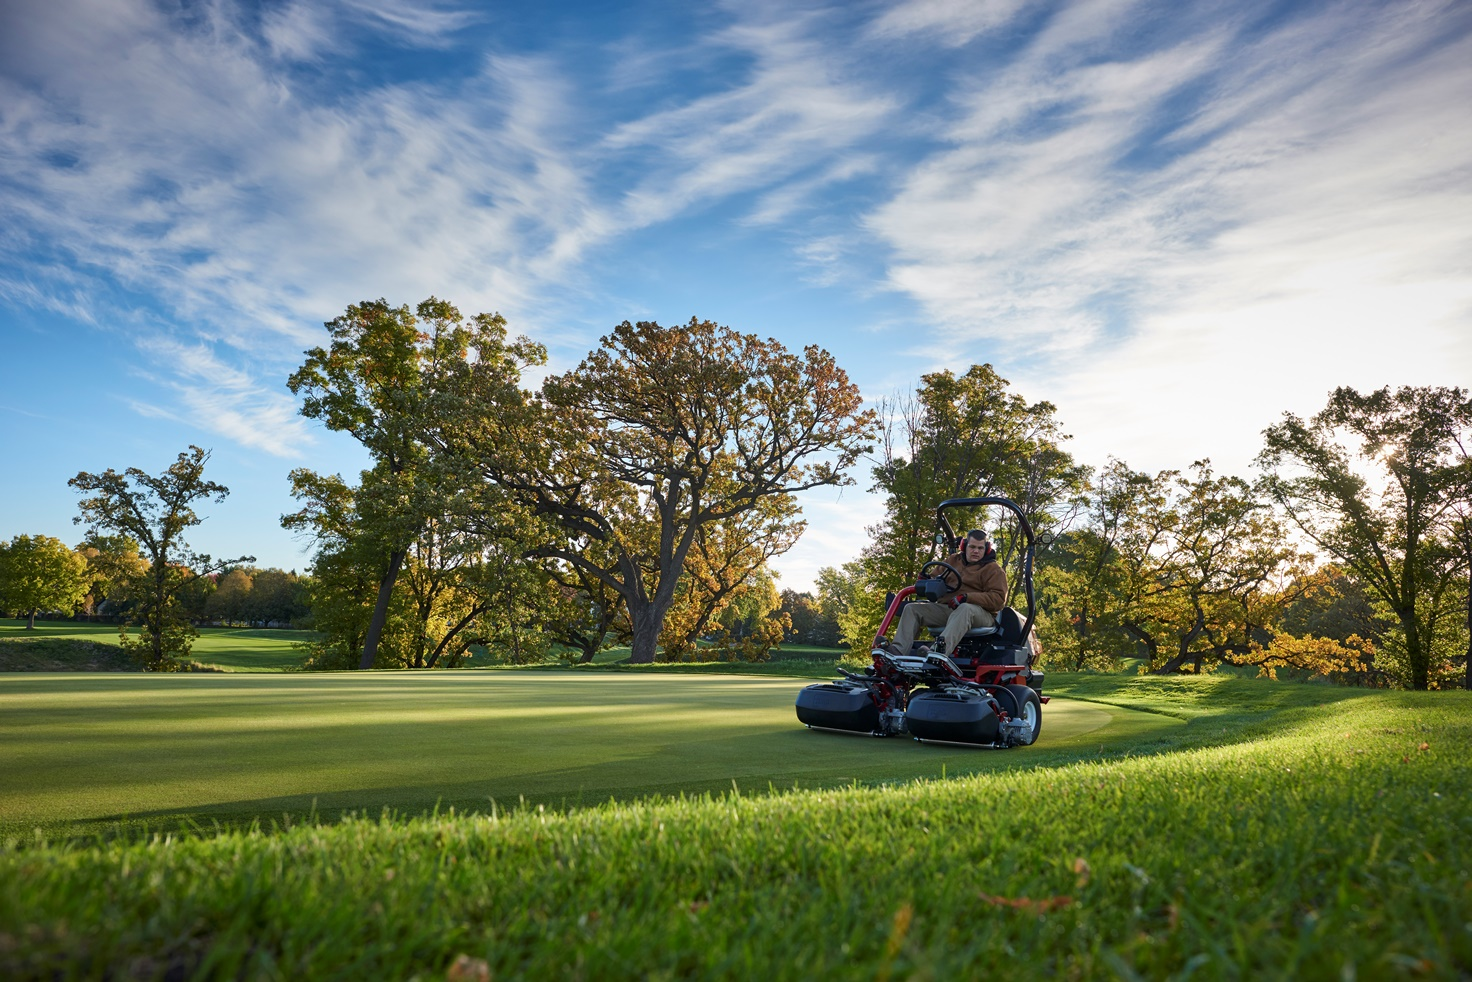 The new revolutionary, non-hydraulic Toro® Greensmaster® eTriFlex™ 3360 greensmower is here